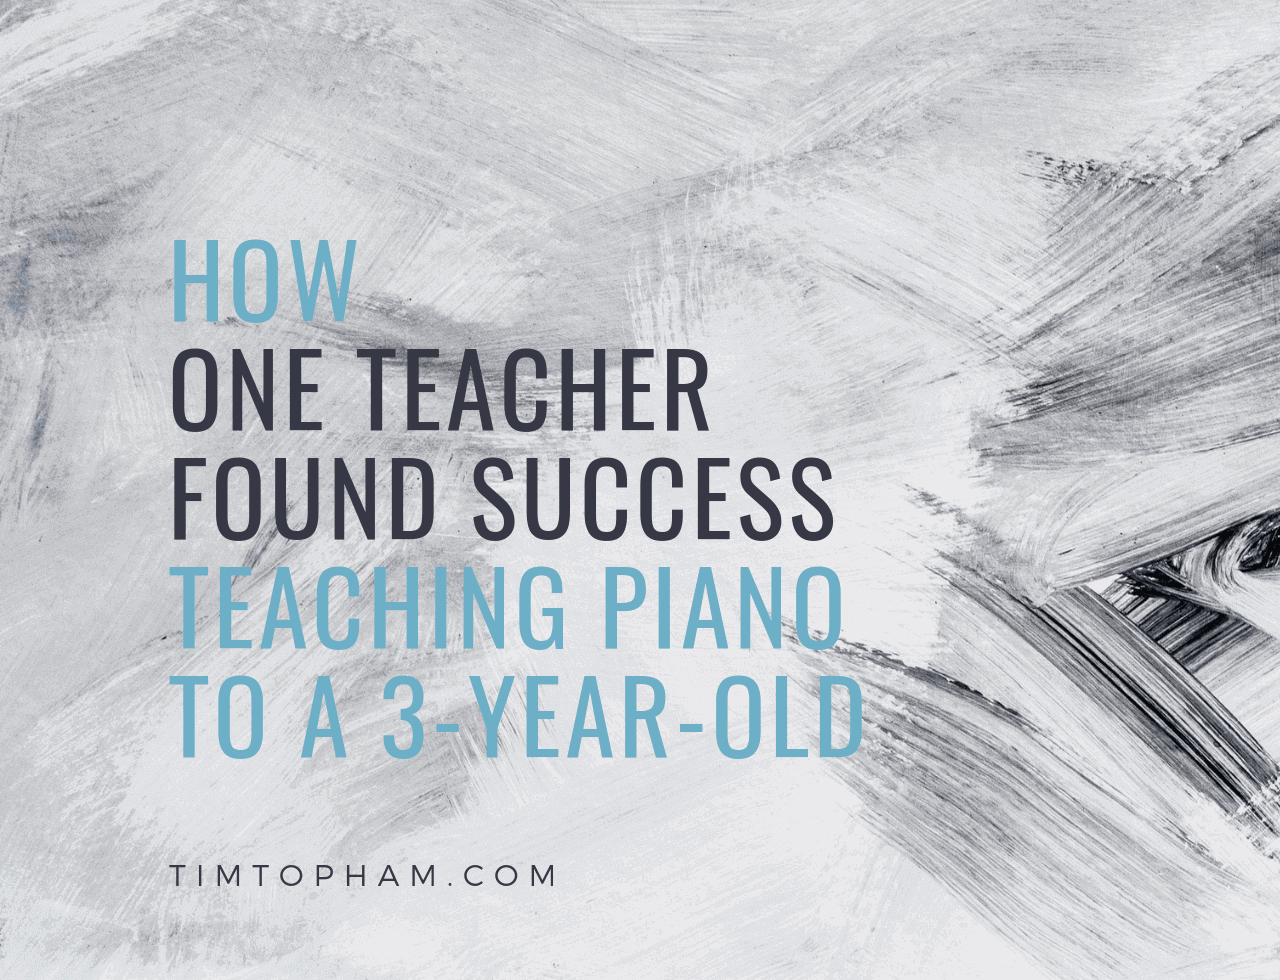 How-One-Teacher-Found-Success-Teaching-Piano-to-a-3-Year-Old